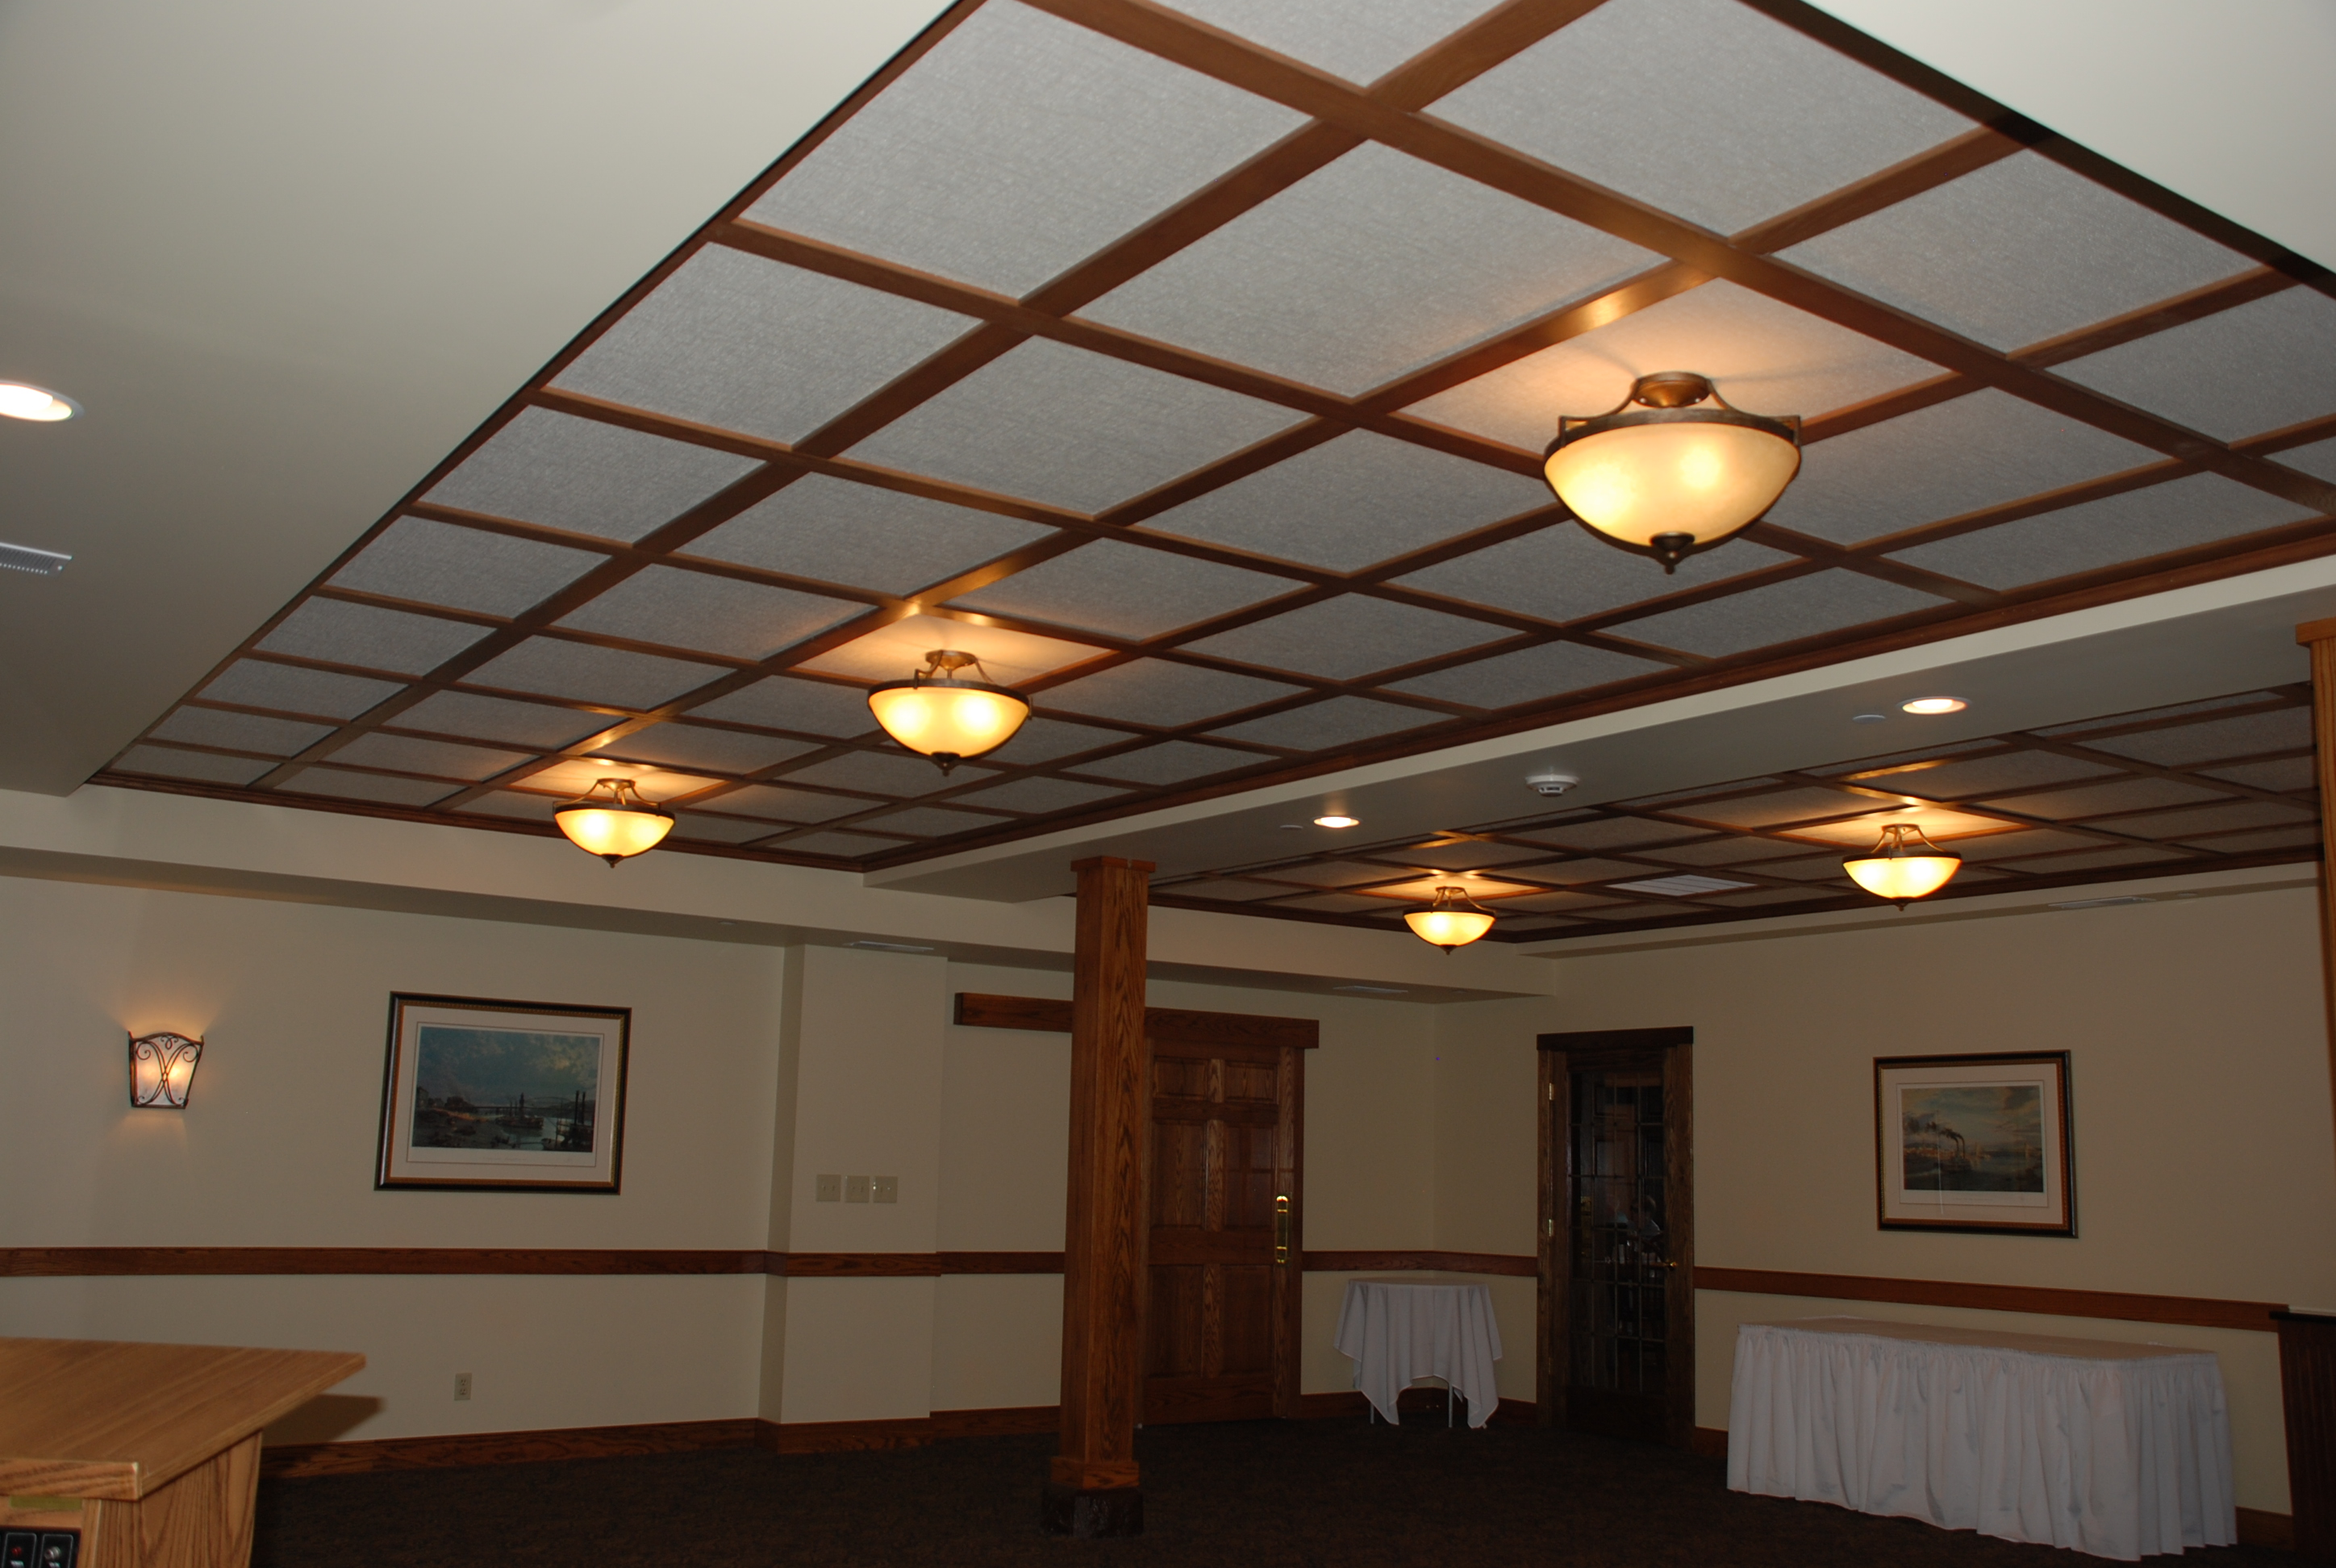 How To Paint A Vaulted Ceiling Room Fast